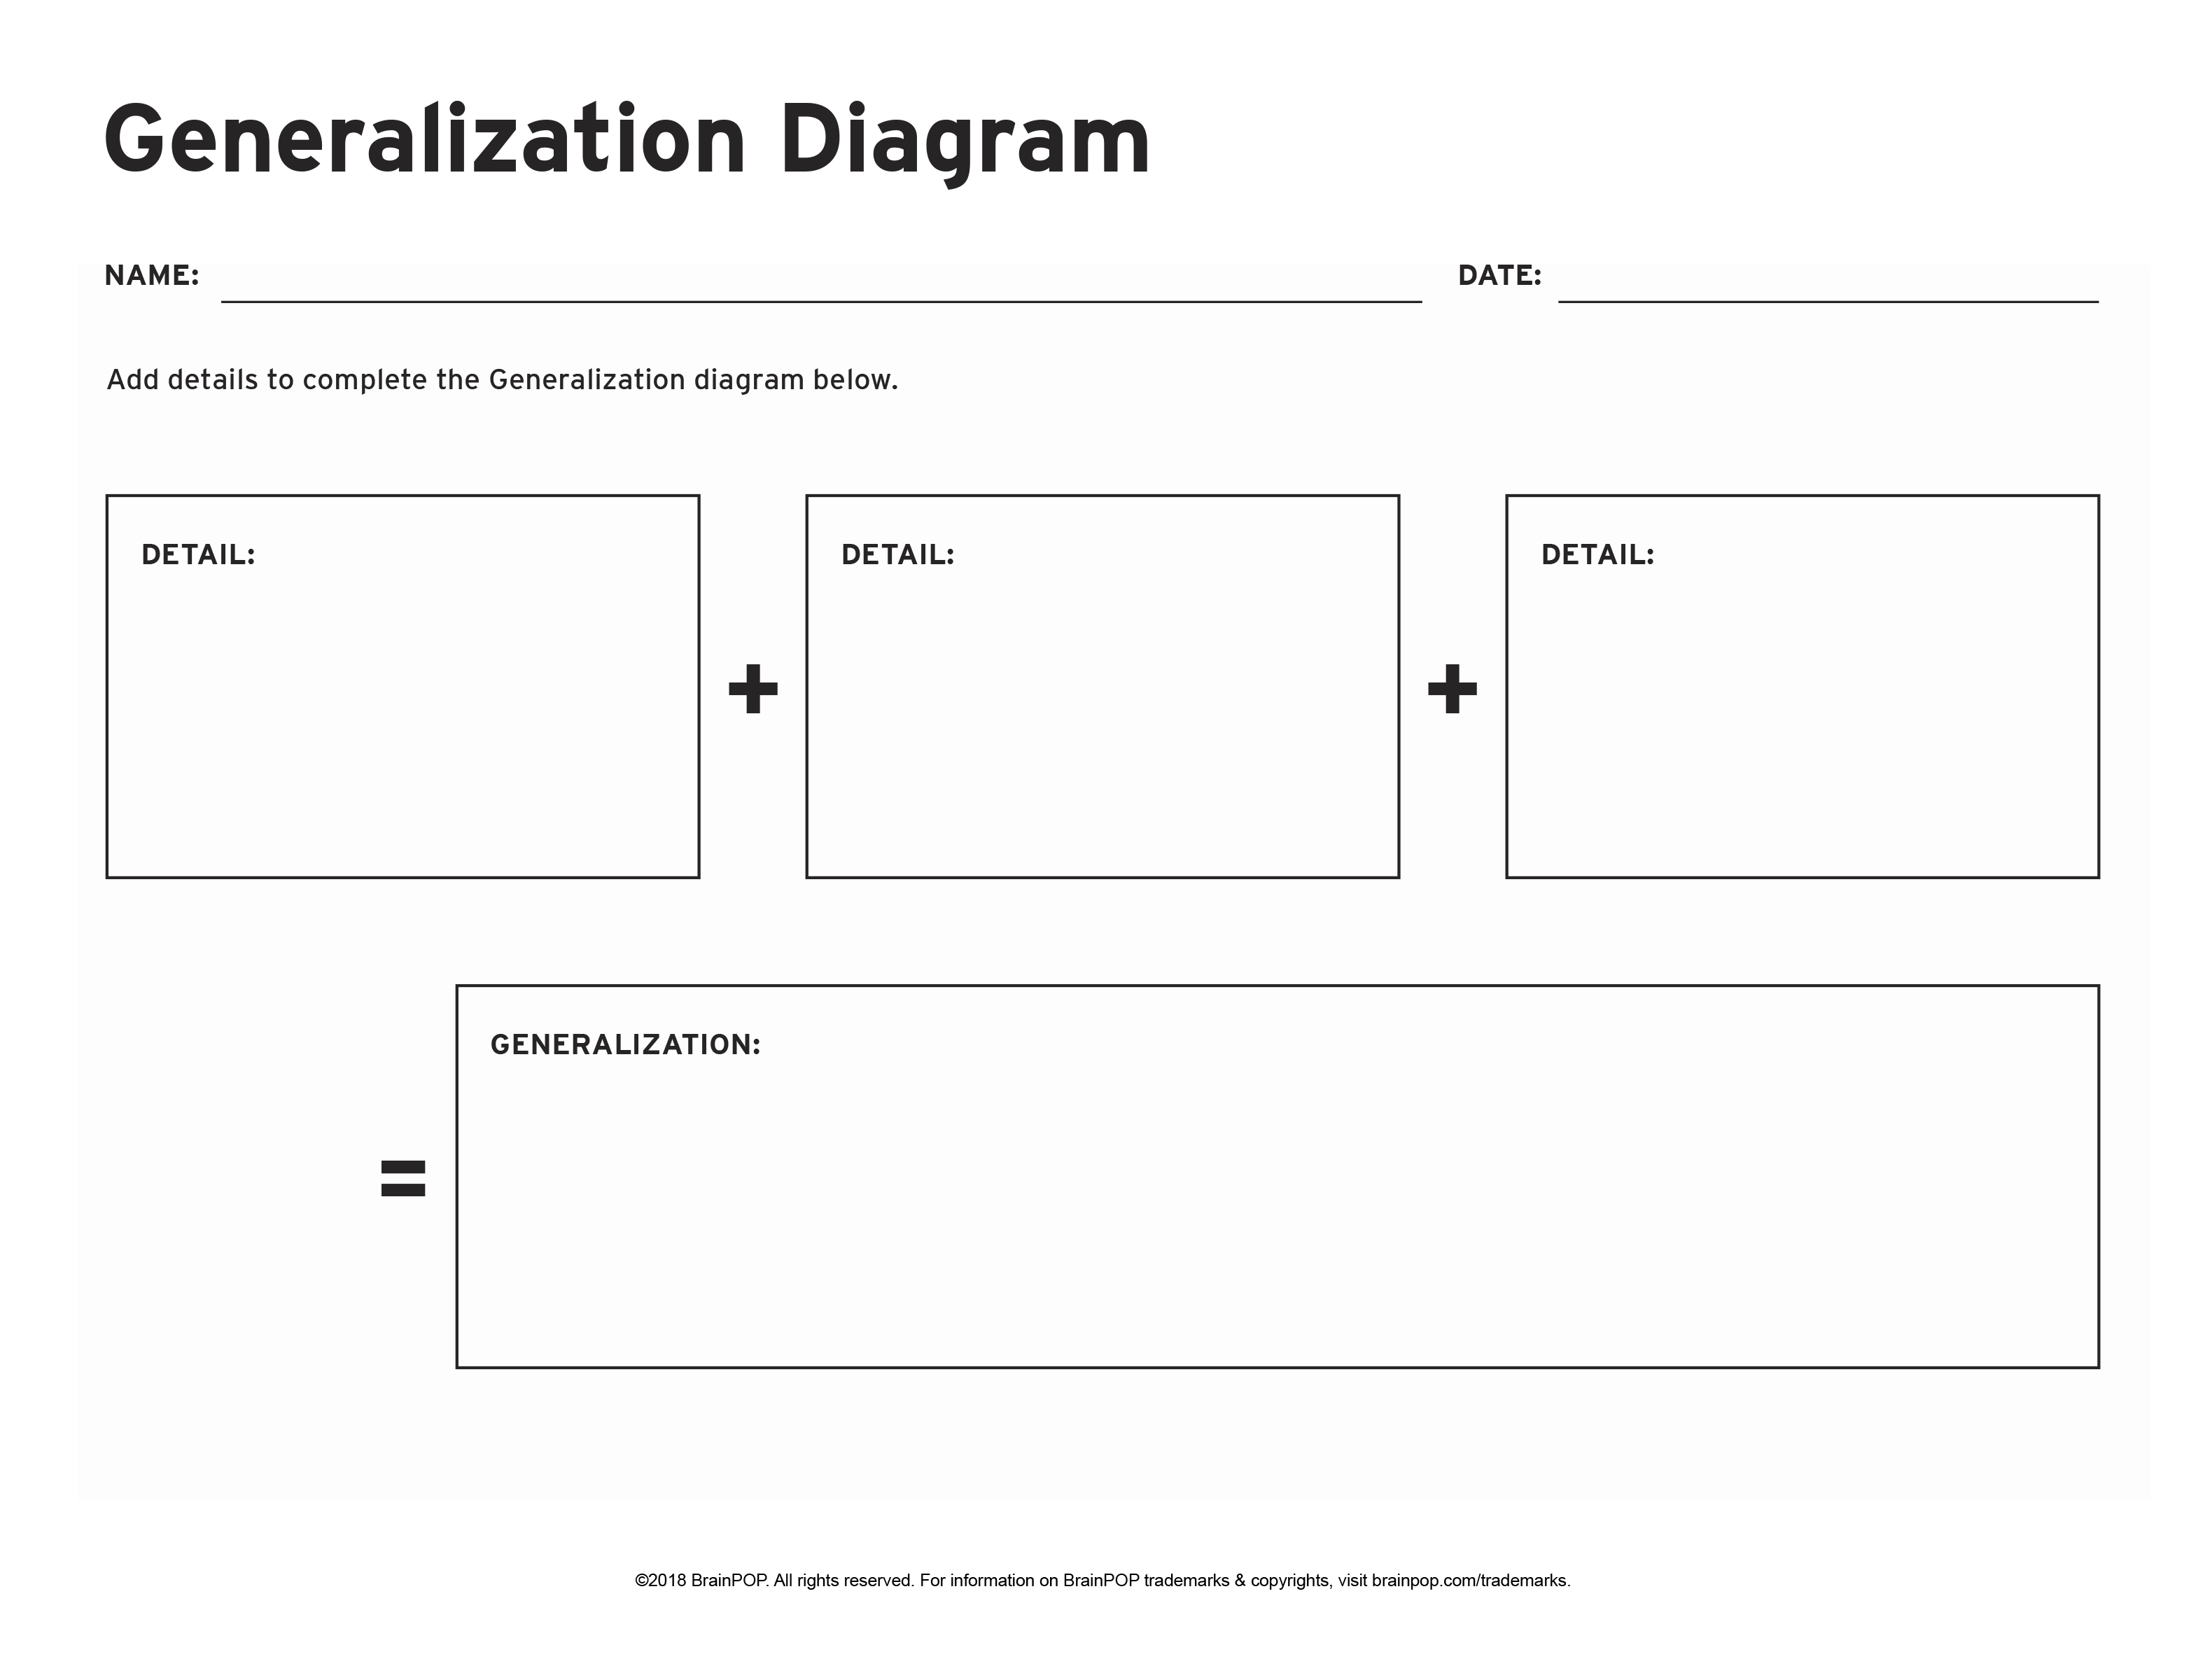 Generalization Diagram